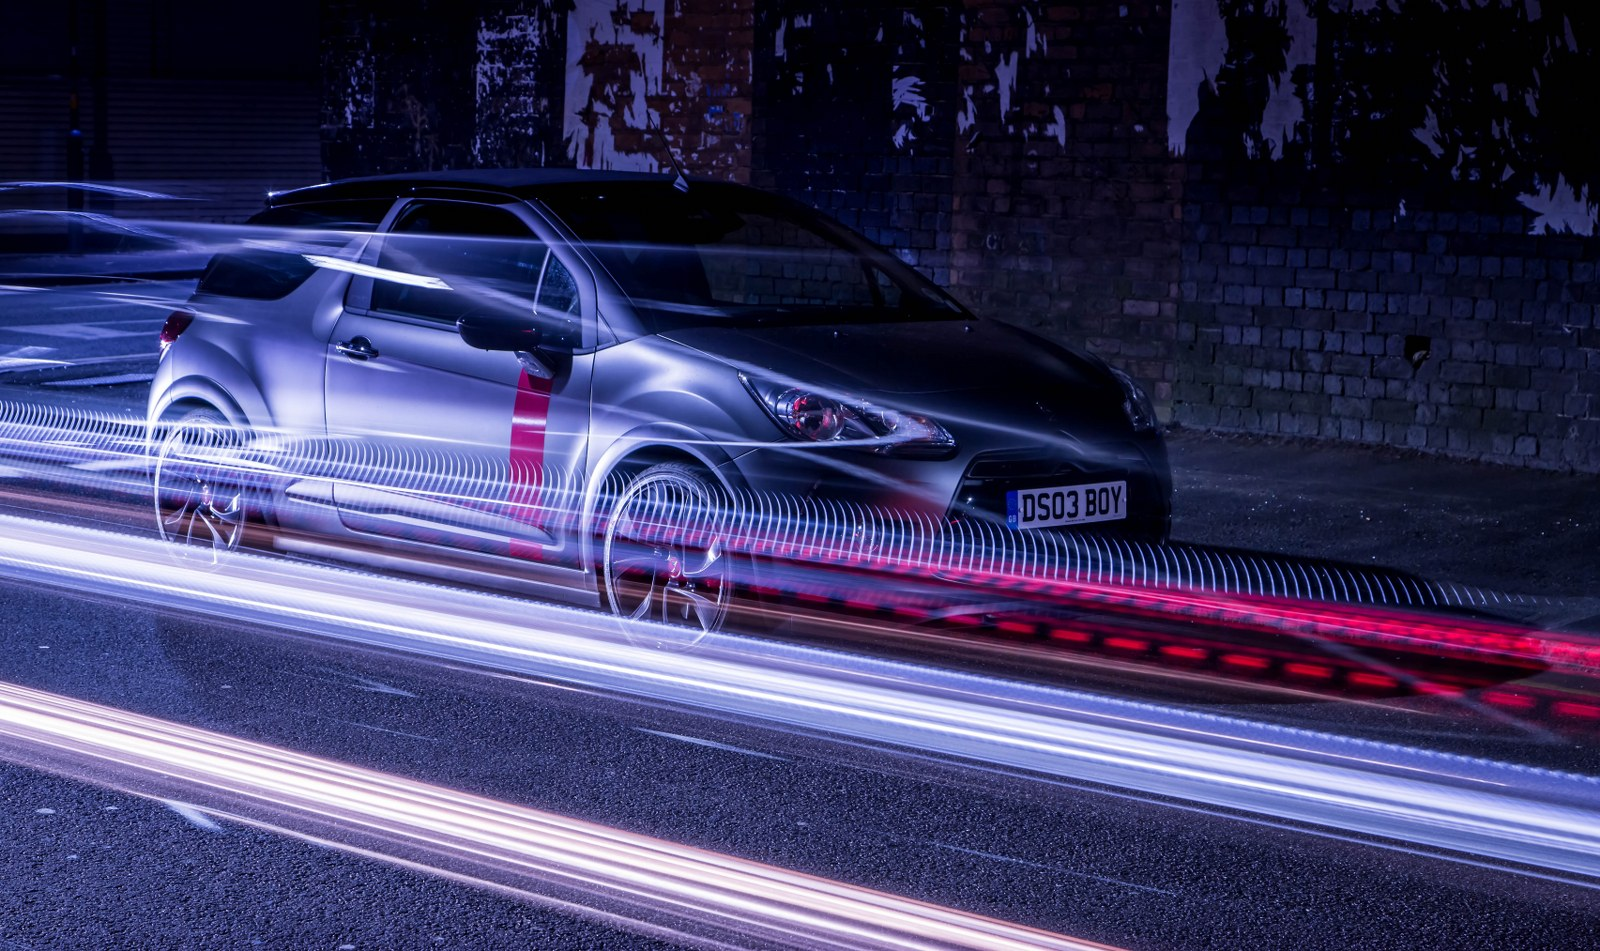 Our Automotive Light Painting Long Exposure Work